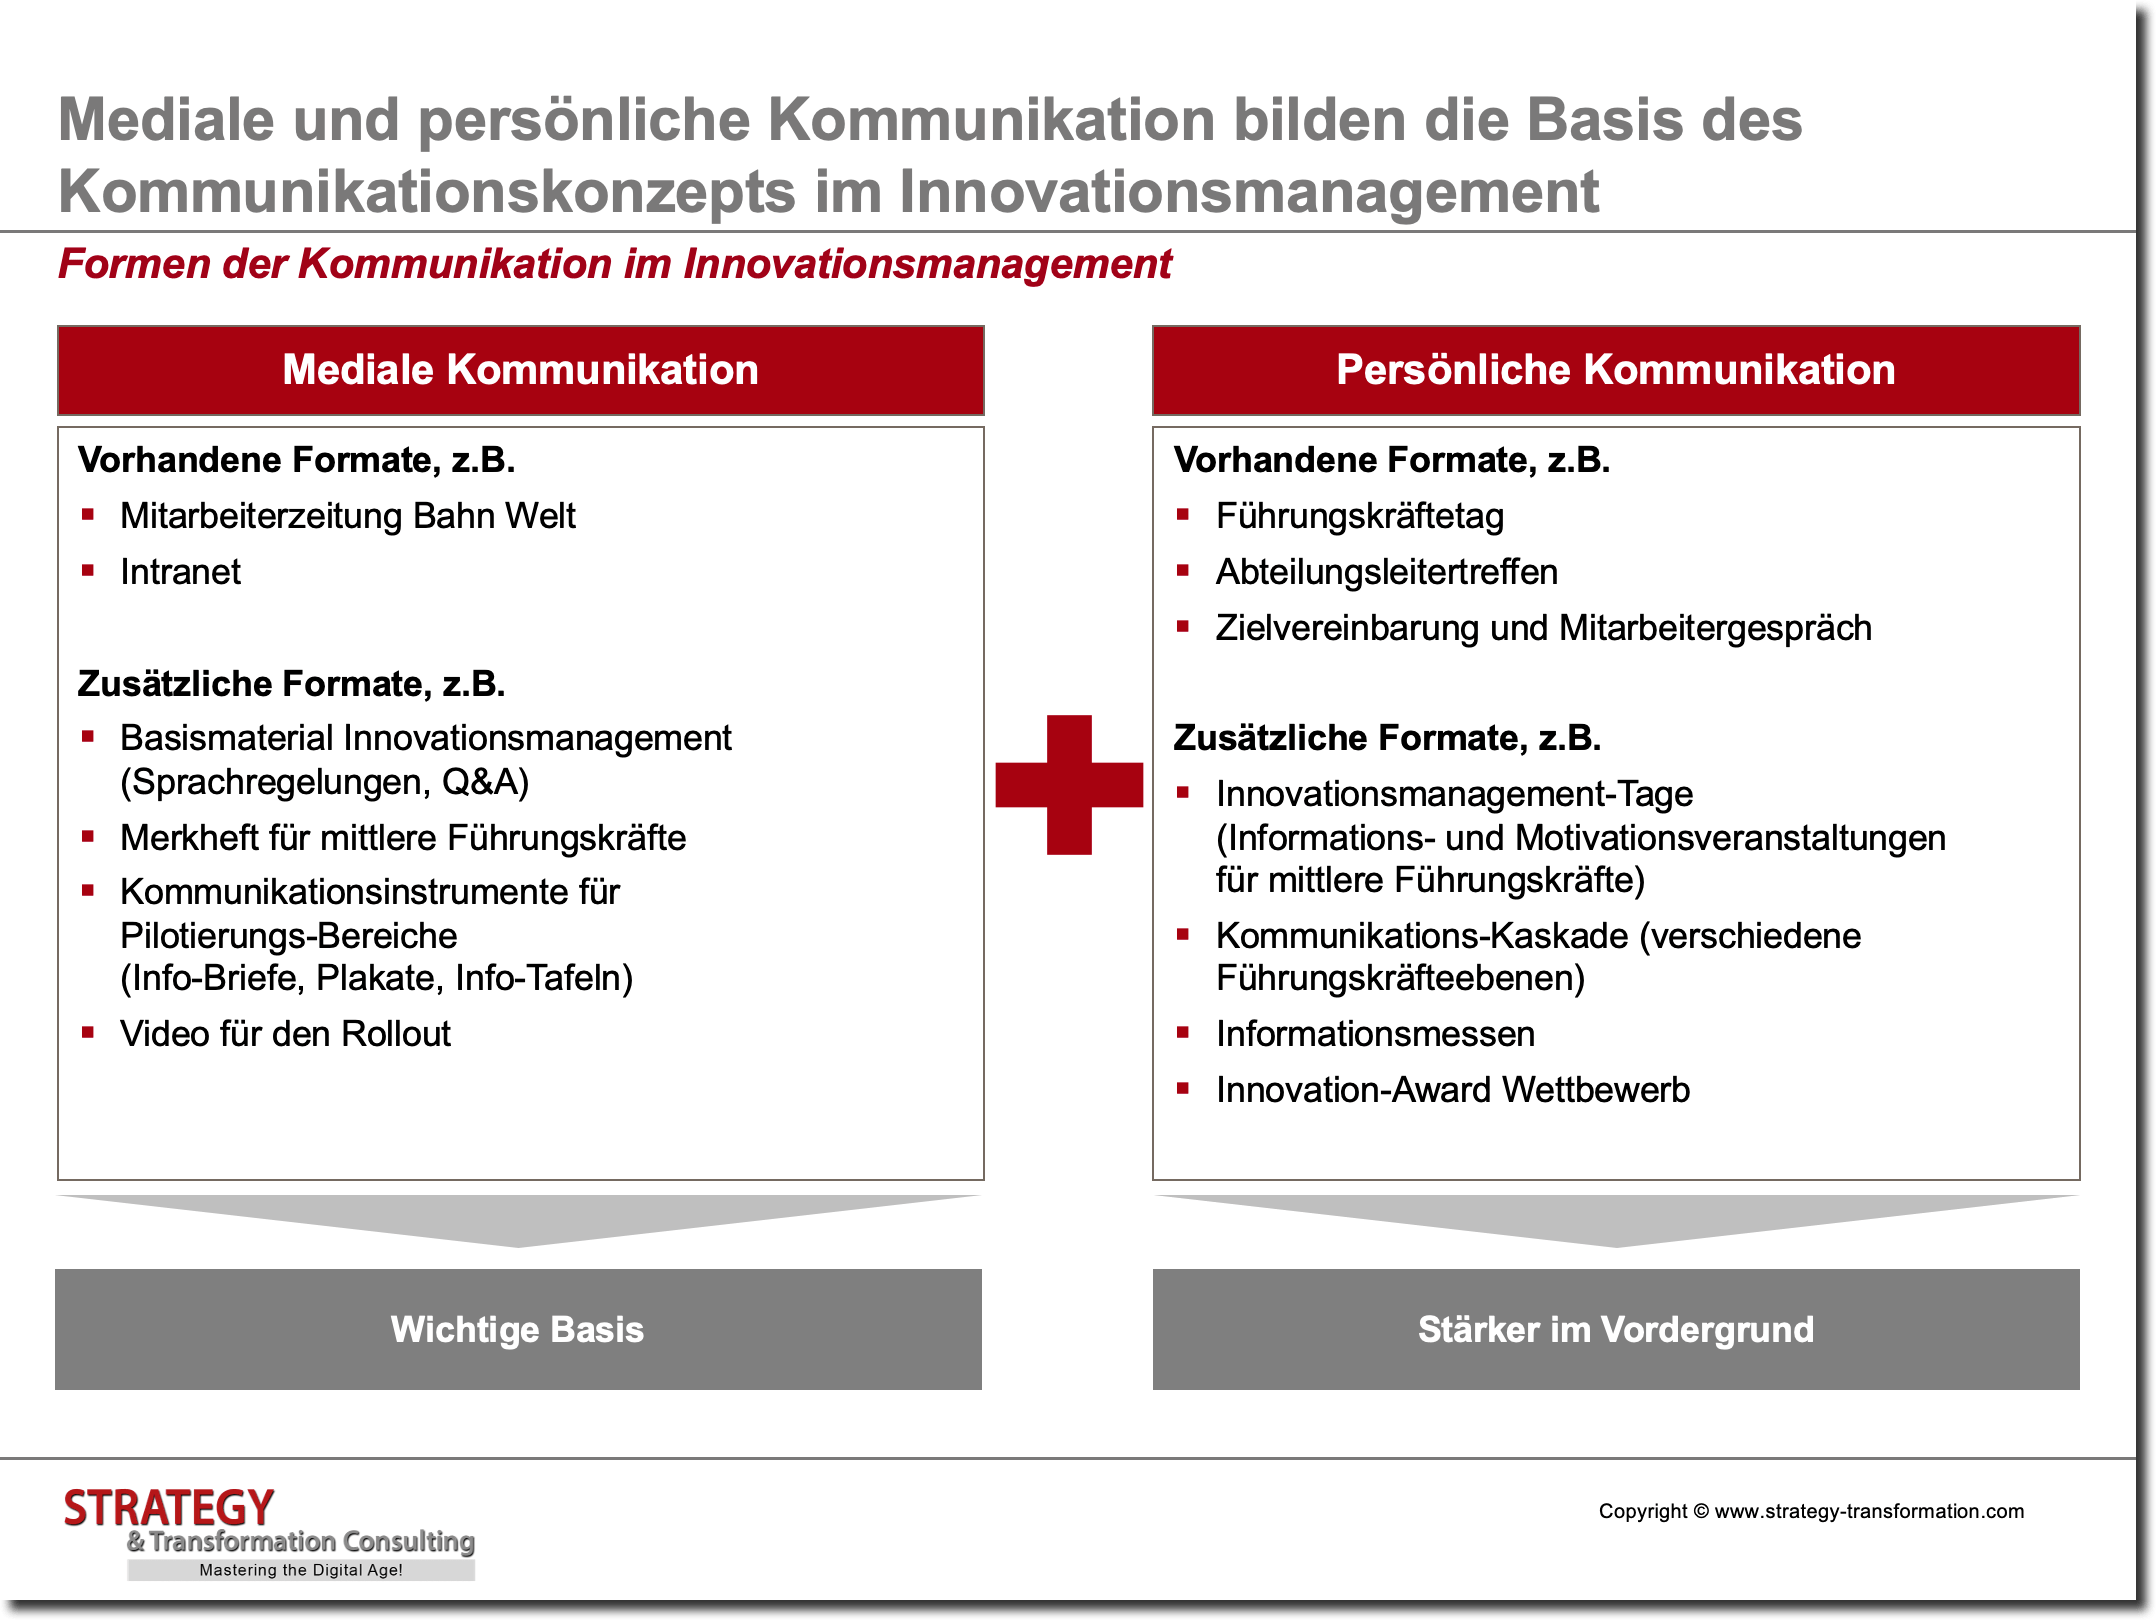 Innovationsmanagement_Formen der Kommunikation